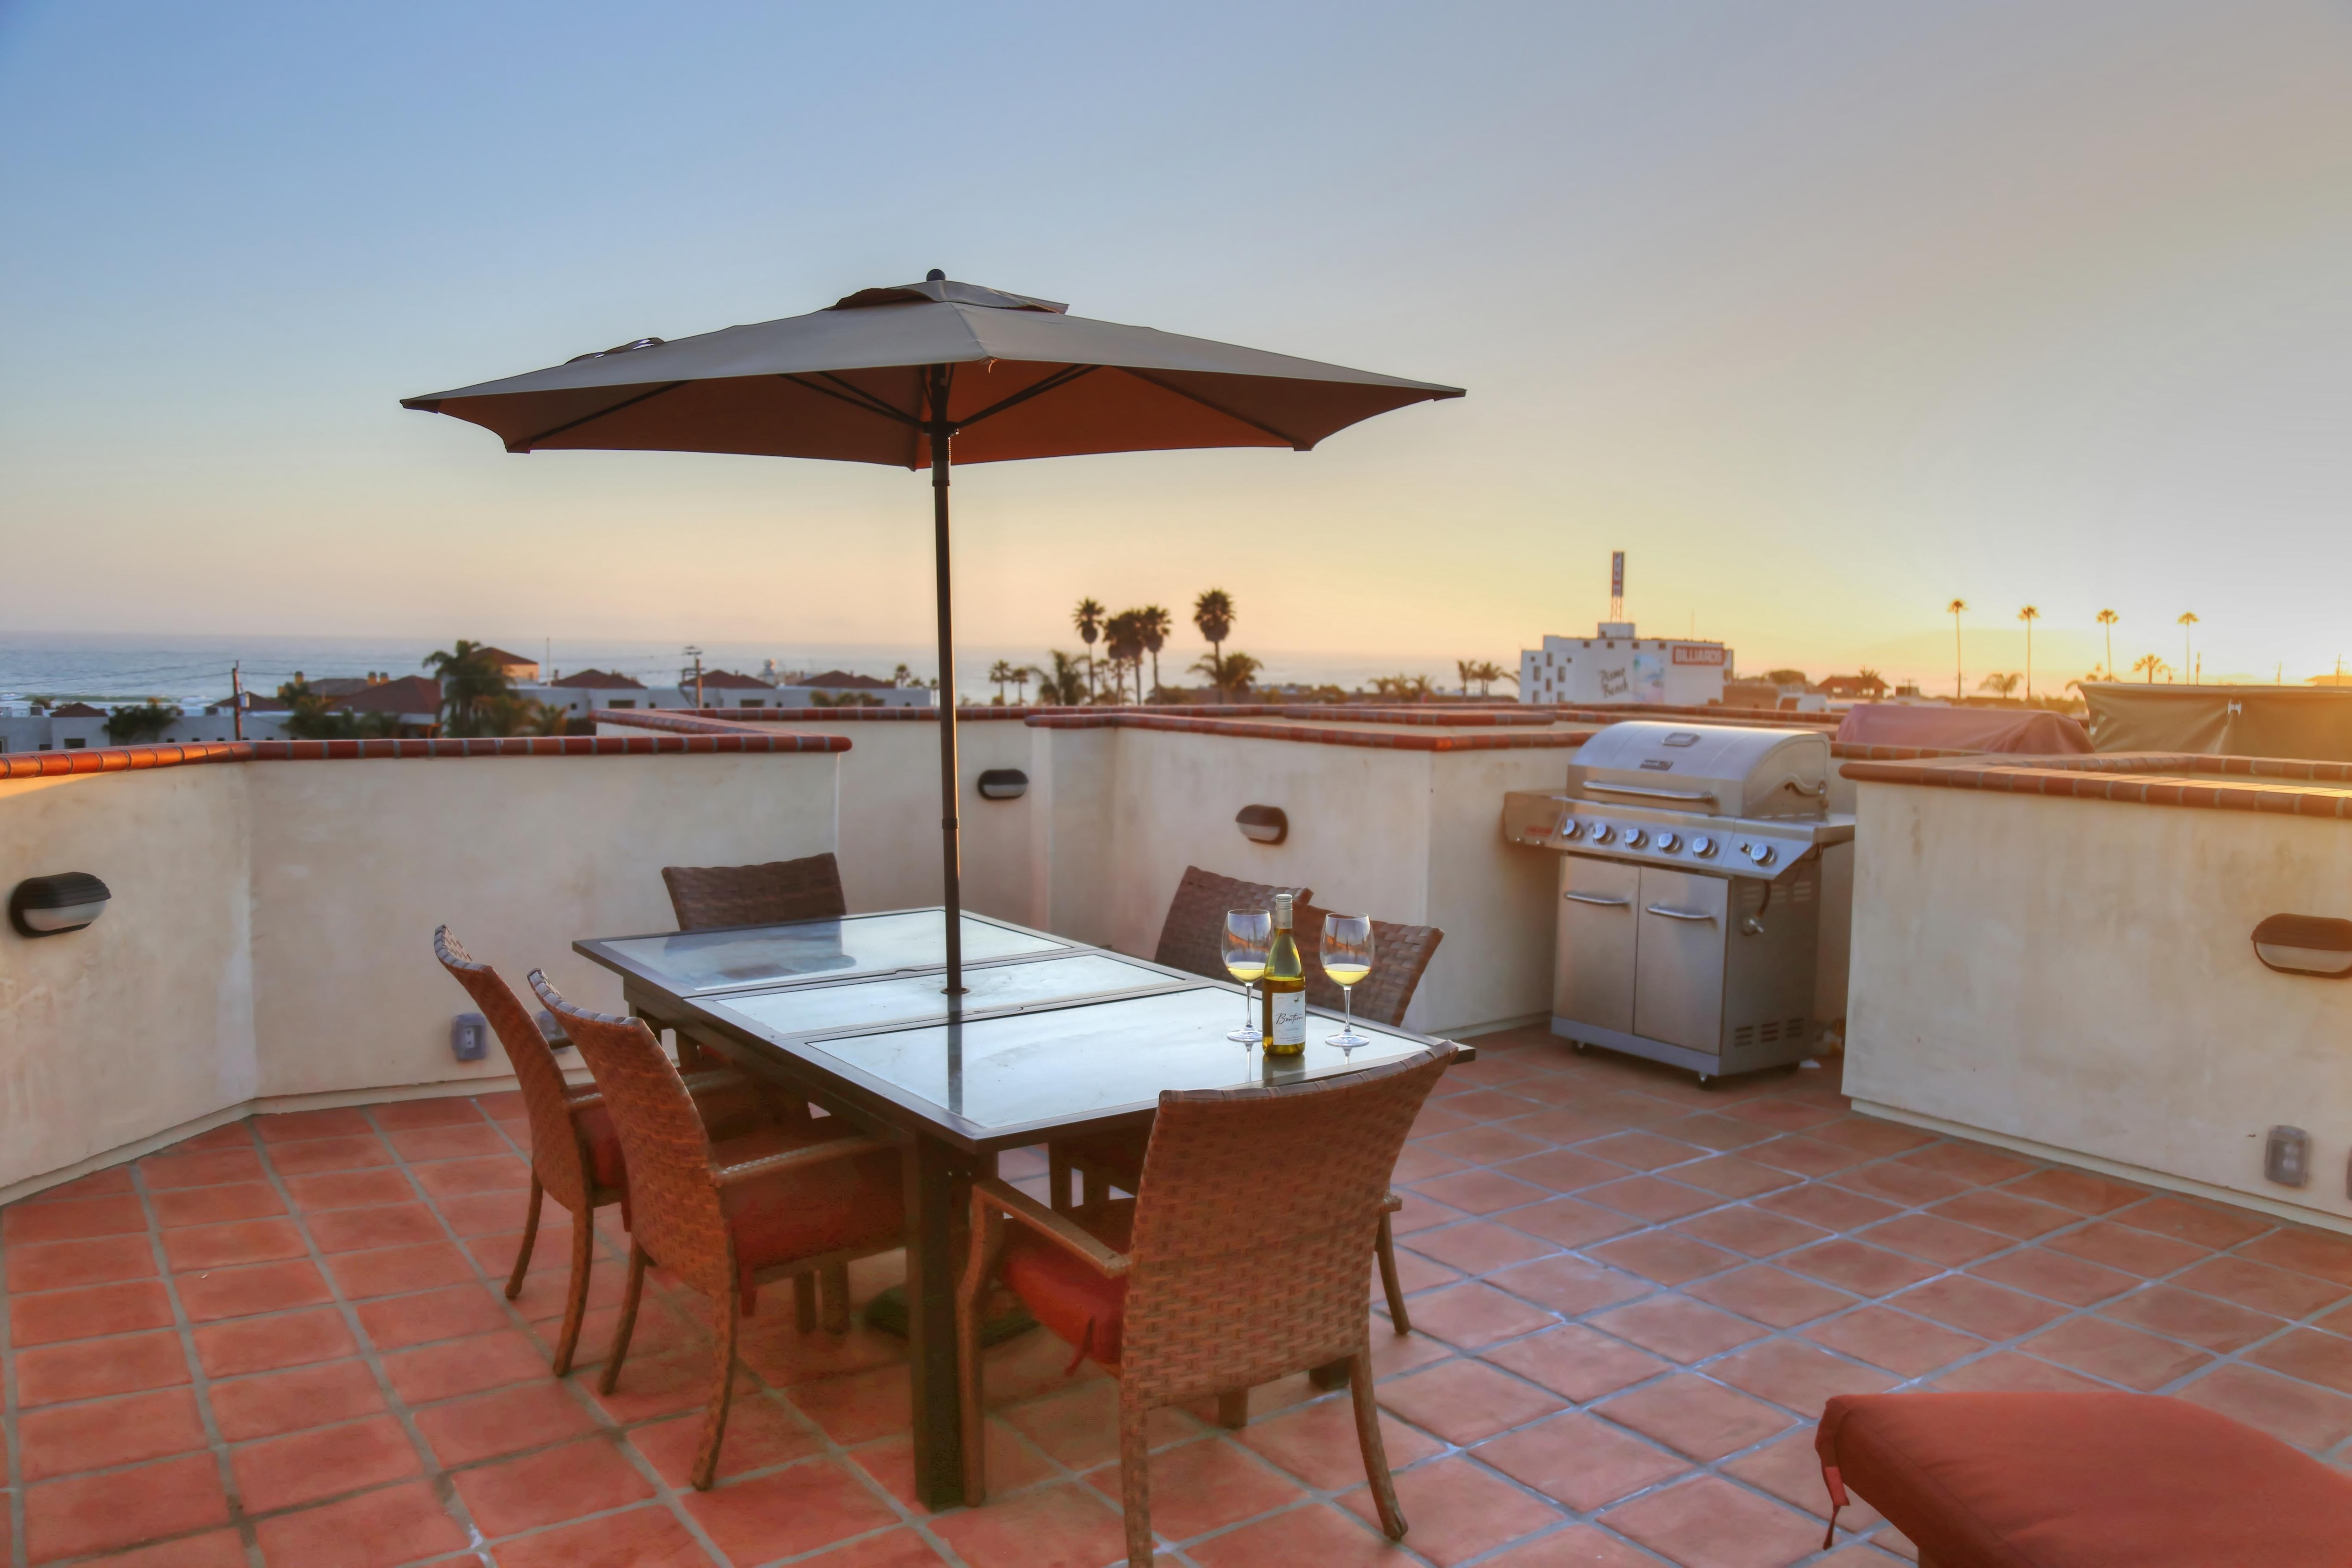 Rooftop living area with dining for six (6), two lounge chairs, and built-in gas BBQ grill. Views of ocean, mountains and downtown Pismo Beach are breath taking.